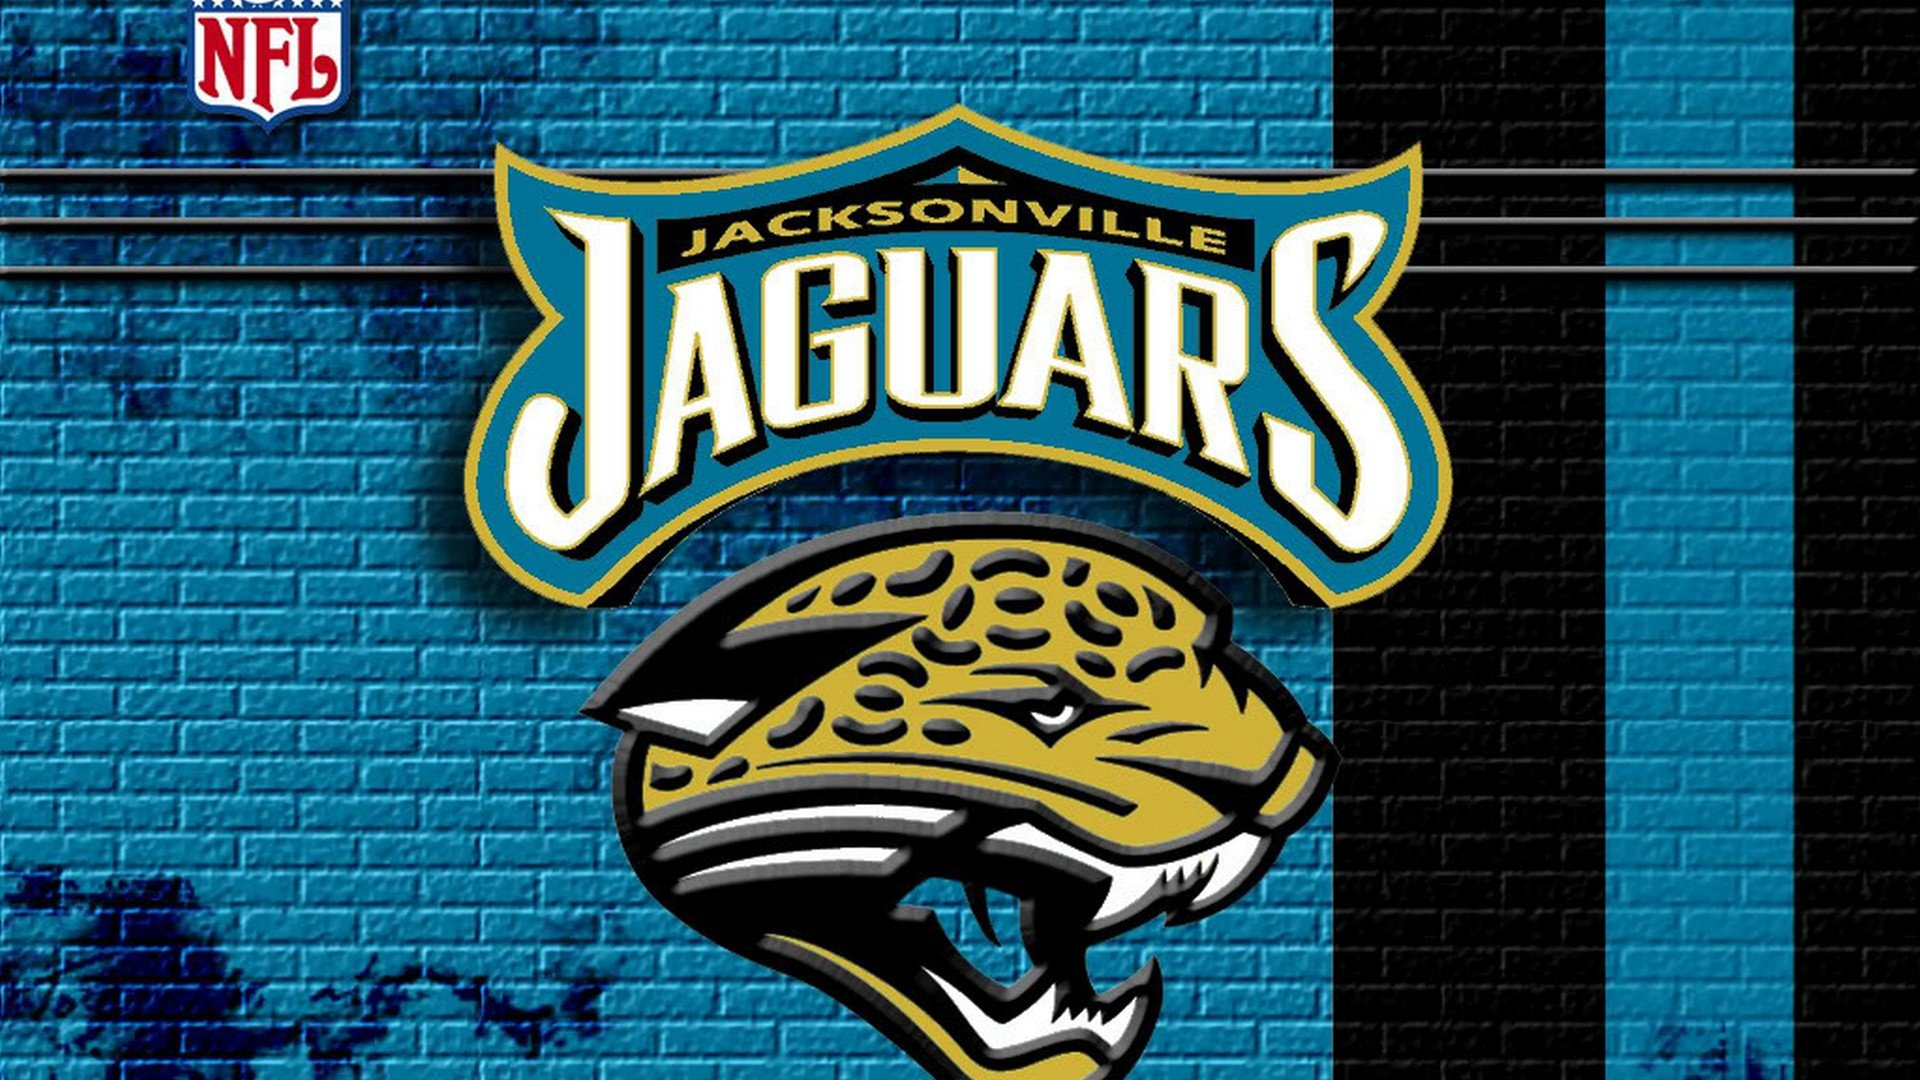 21] Jacksonville Jaguars 2018 Wallpapers on WallpaperSafari 1920x1080